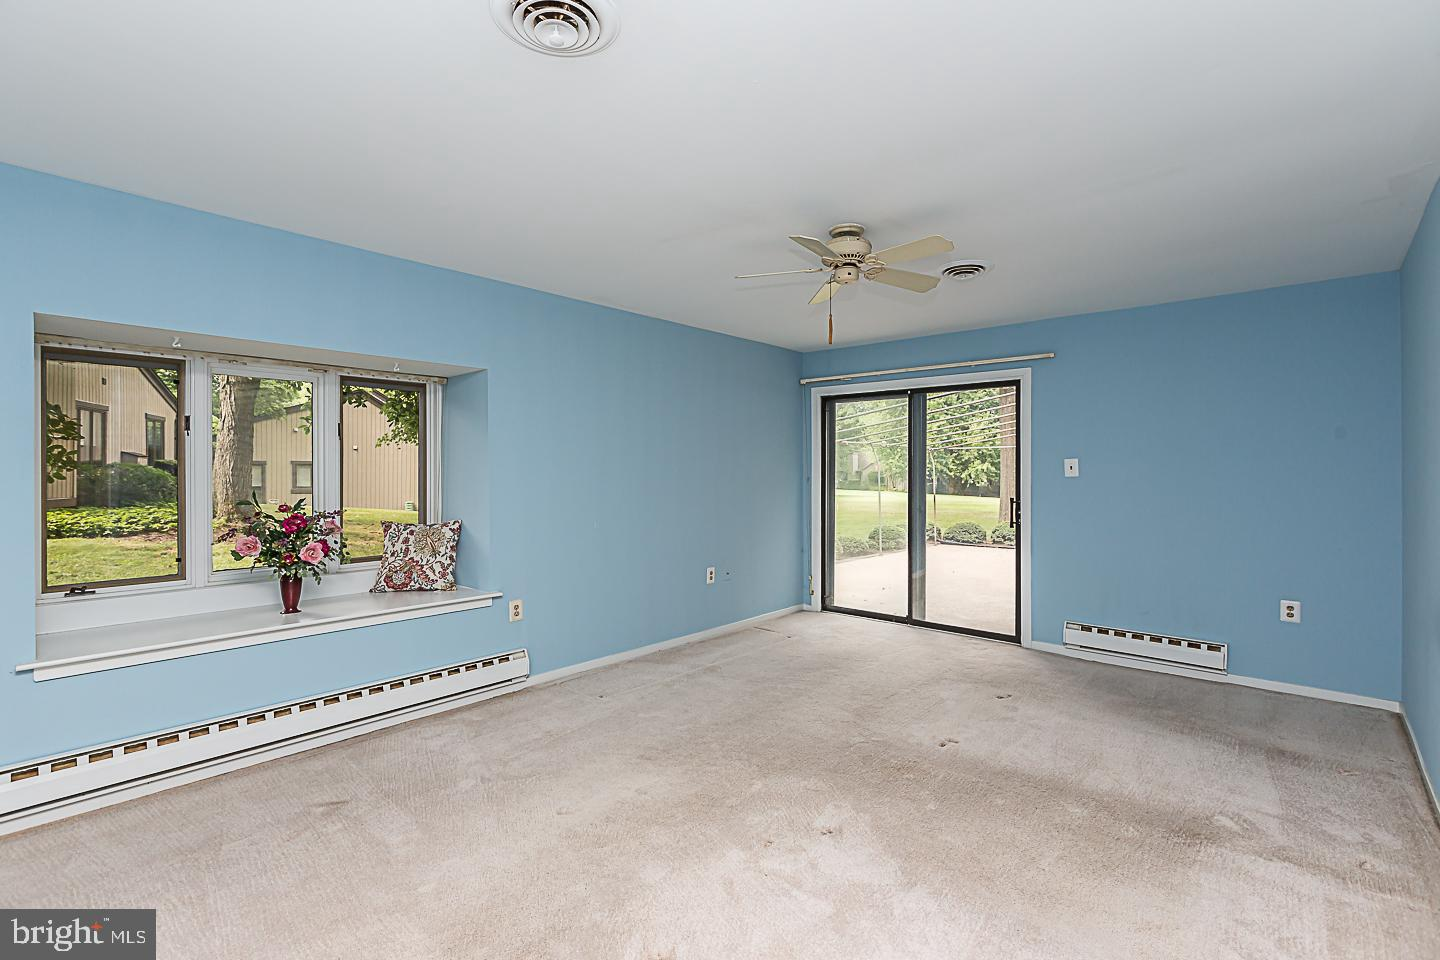 186 Chandler Drive West Chester , PA 19380